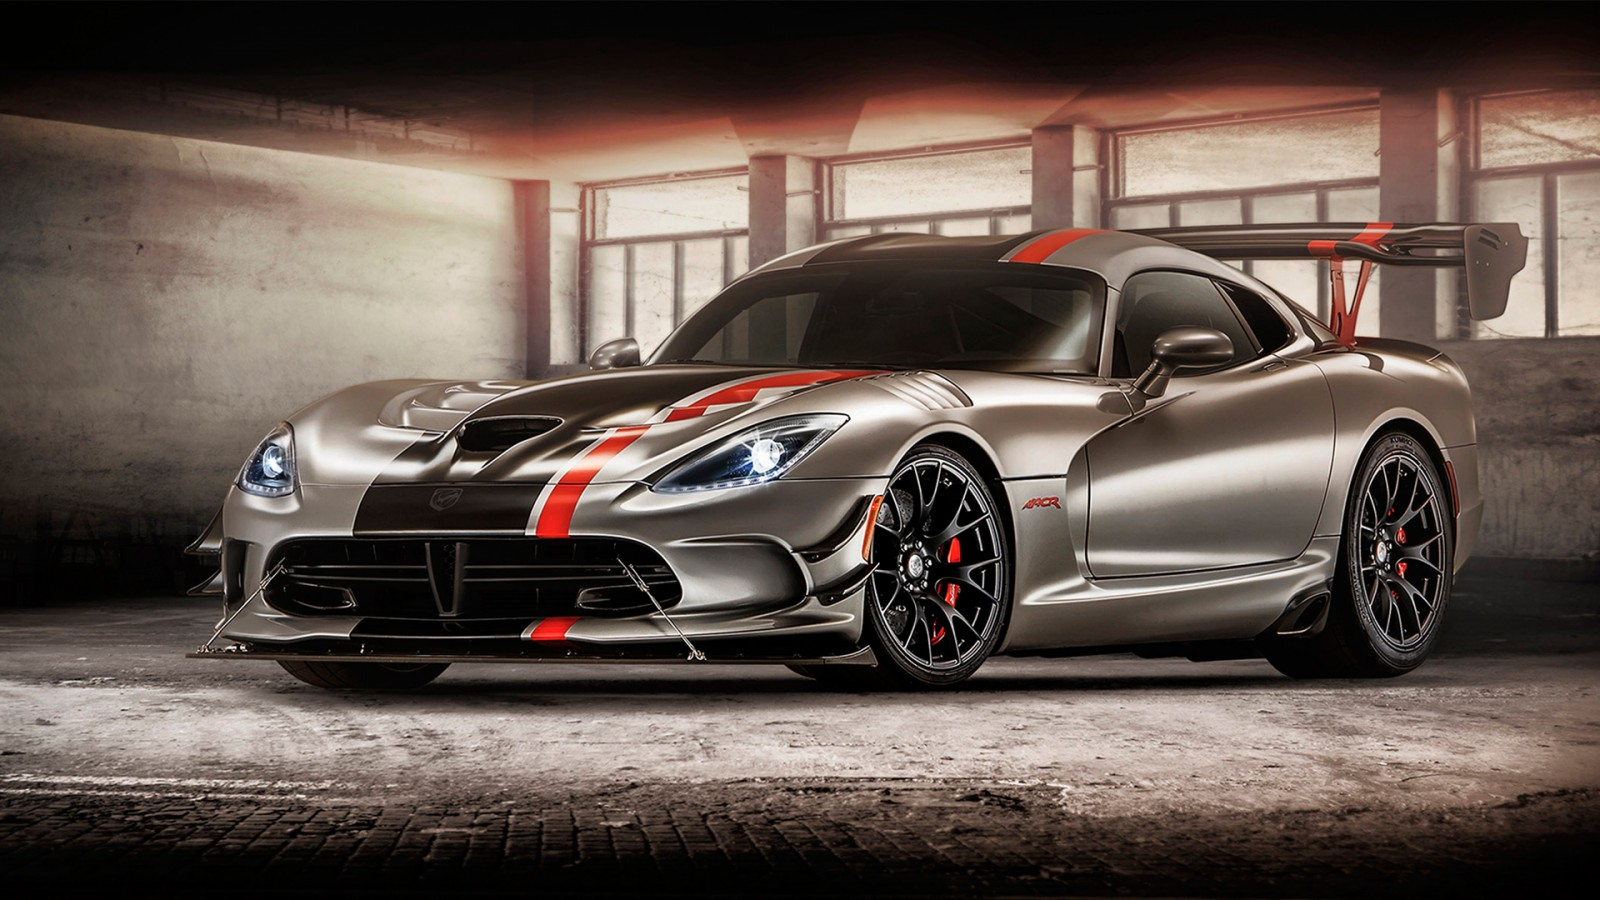 2016 Dodge Viper ACR Wallpaper | HD Car Wallpapers | ID #5337